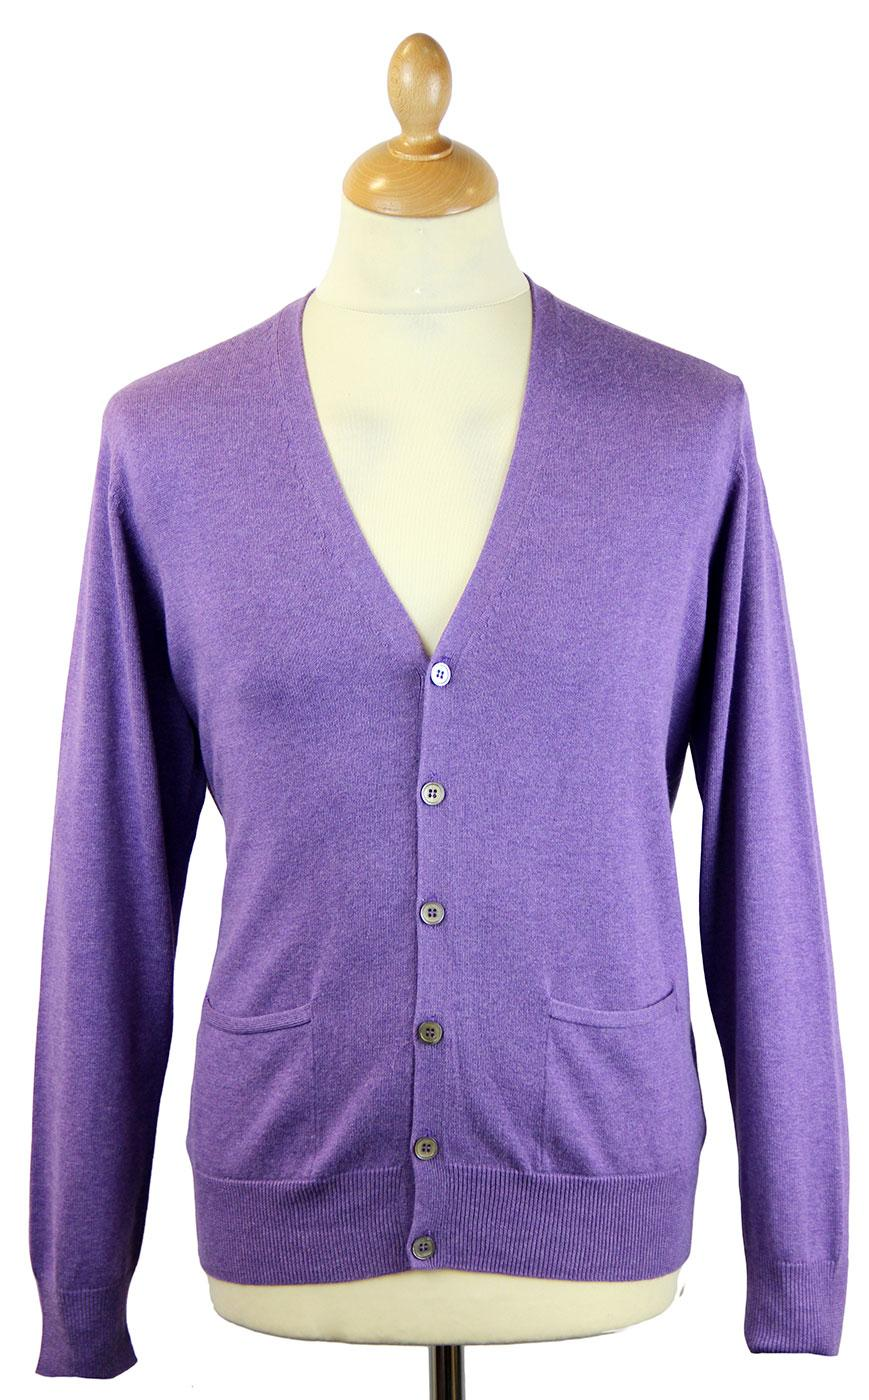 Denside ALAN PAINE Luxury Cotton V-Neck Cardigan G